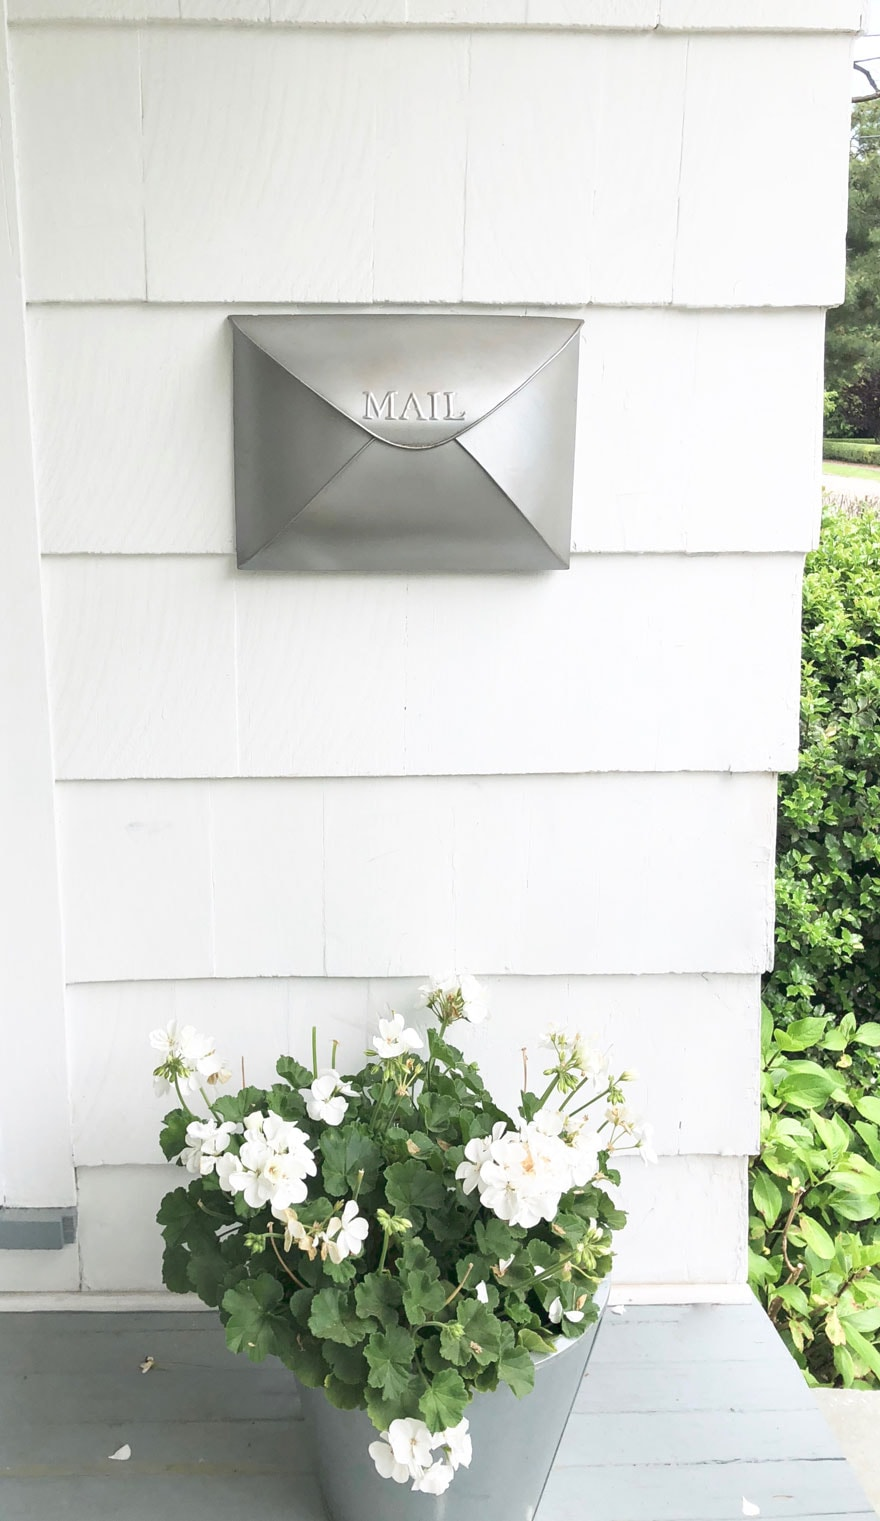 mailbox on white house with geraniums